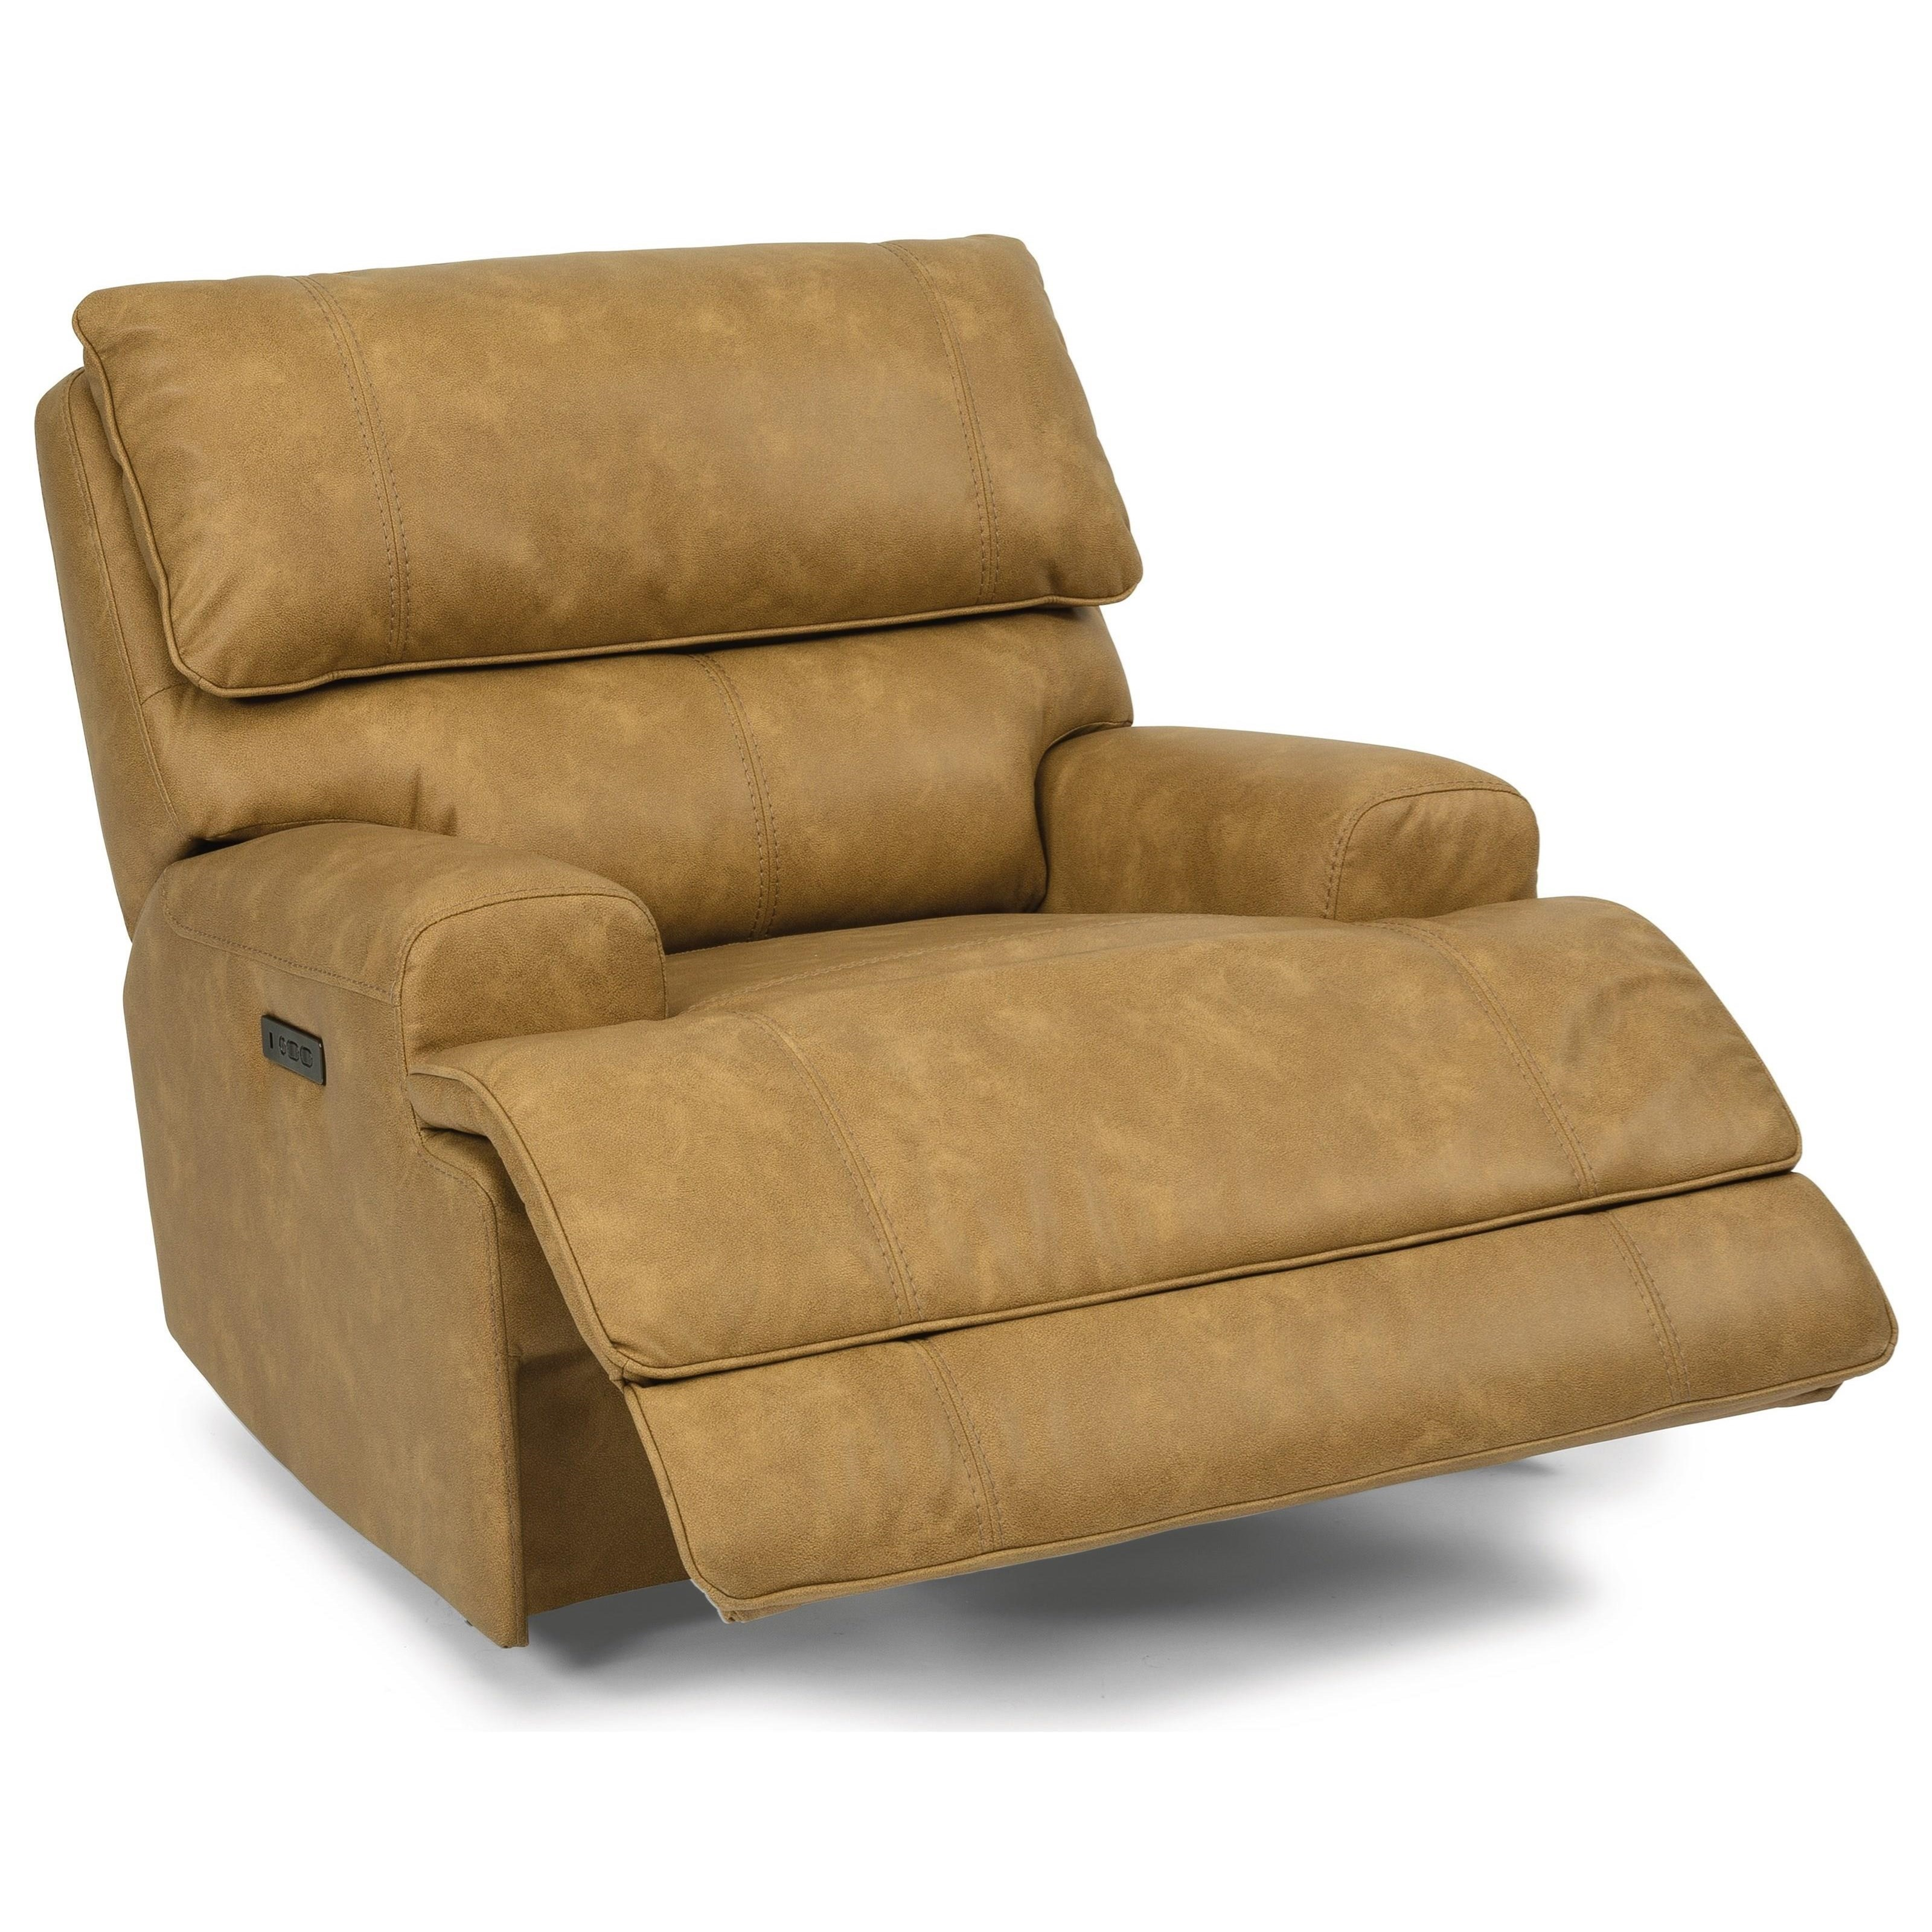 Latitudes - Floyd Power Recliner by Flexsteel at Steger's Furniture